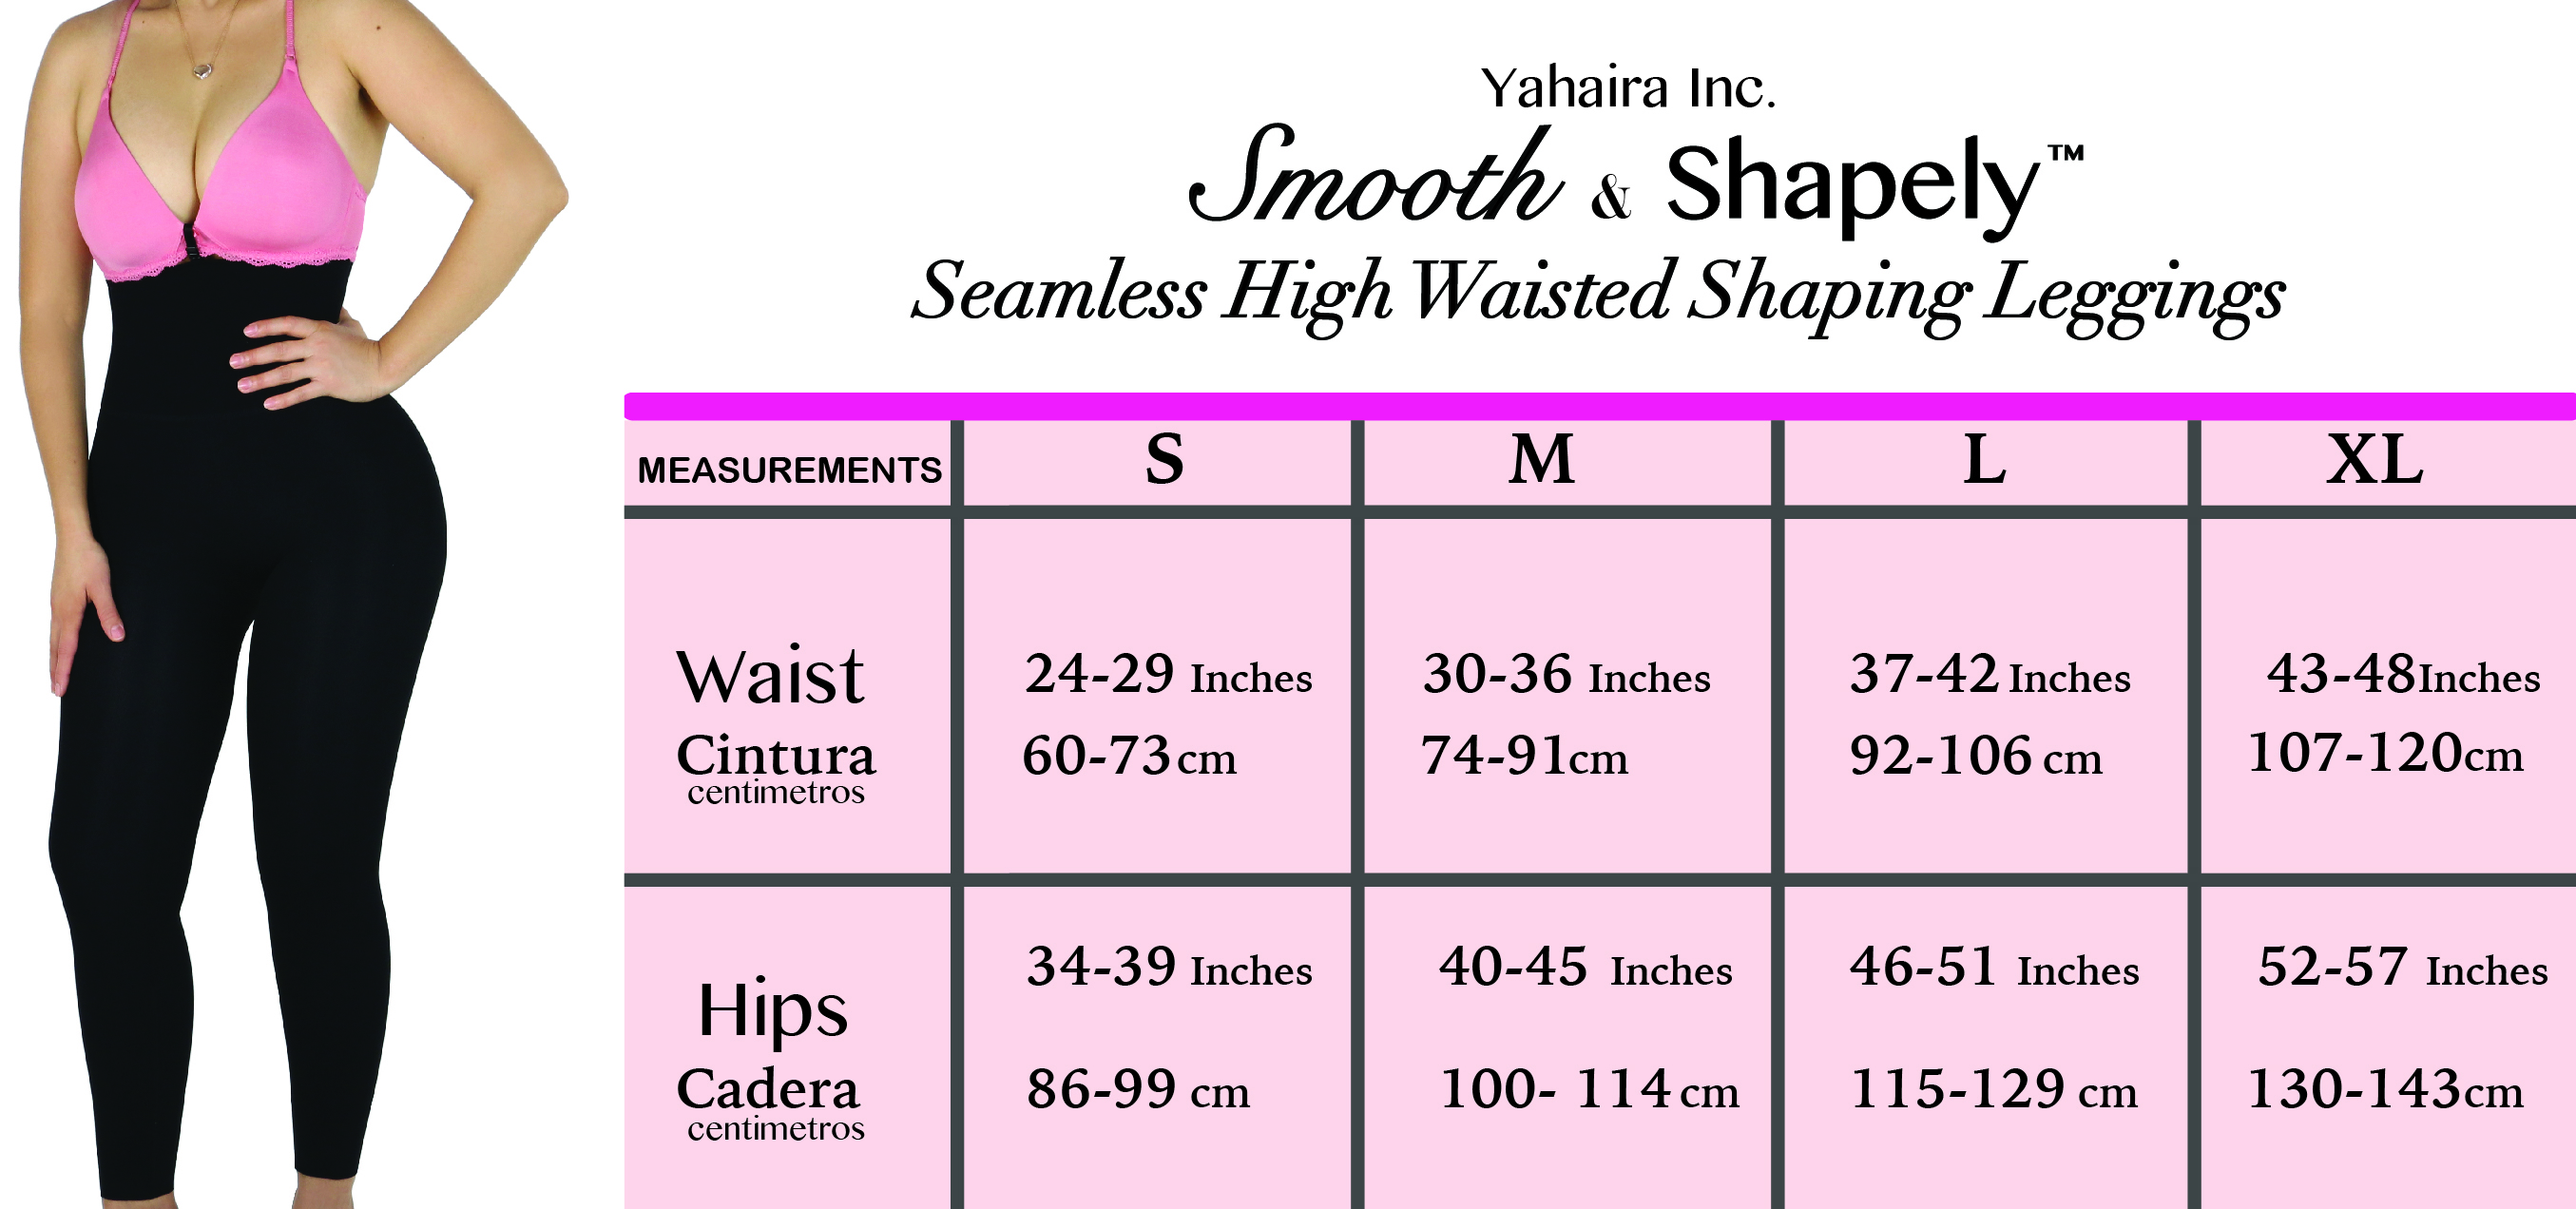 smooth-shapely-size-chart-leggings-.jpg